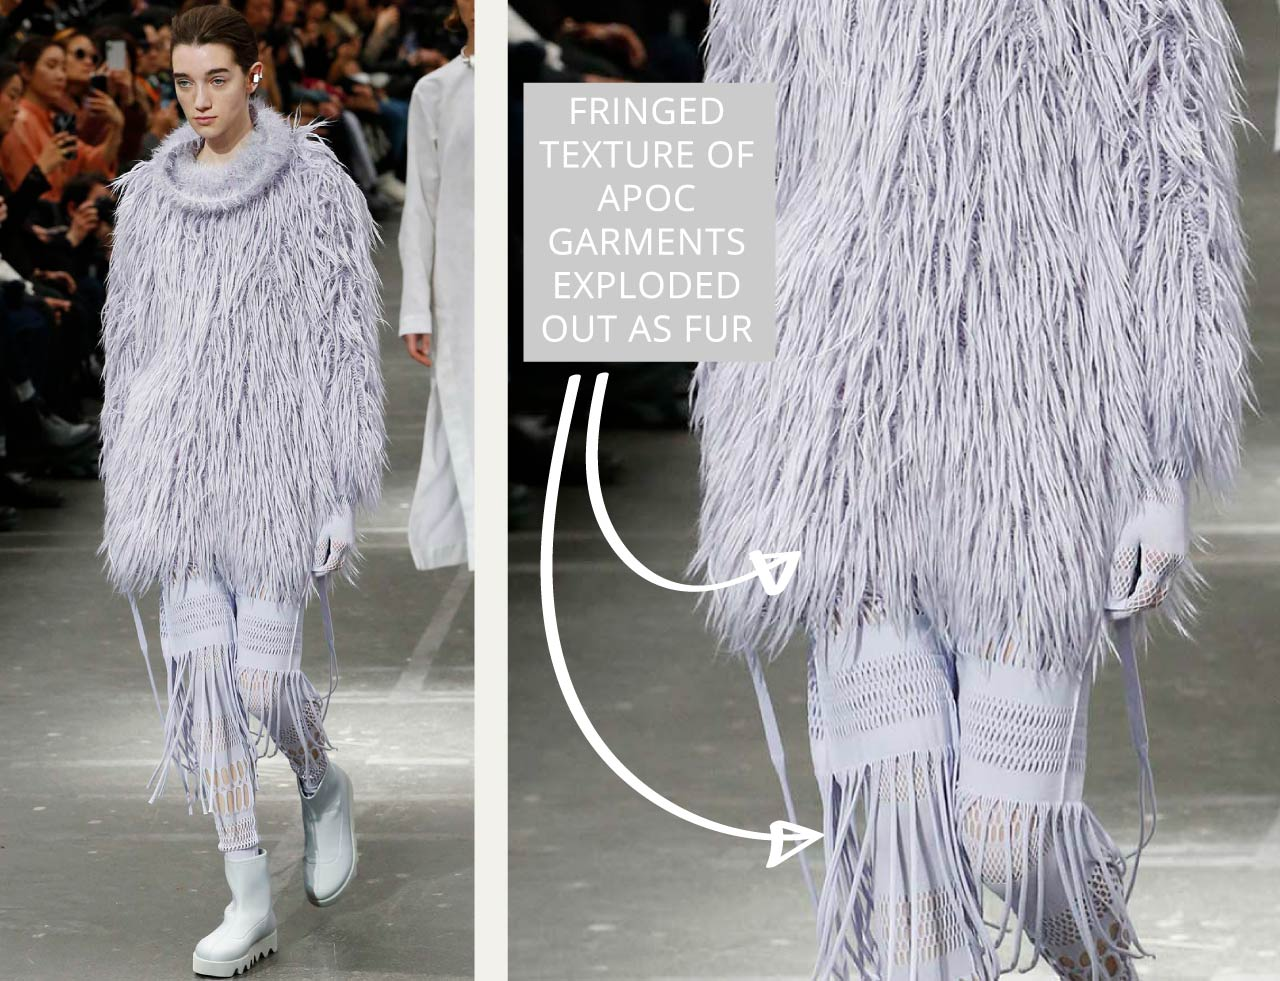 Connected Knits and Layering at Issey Miyake | The Cutting Class. Fringed texture exploded out as fur.